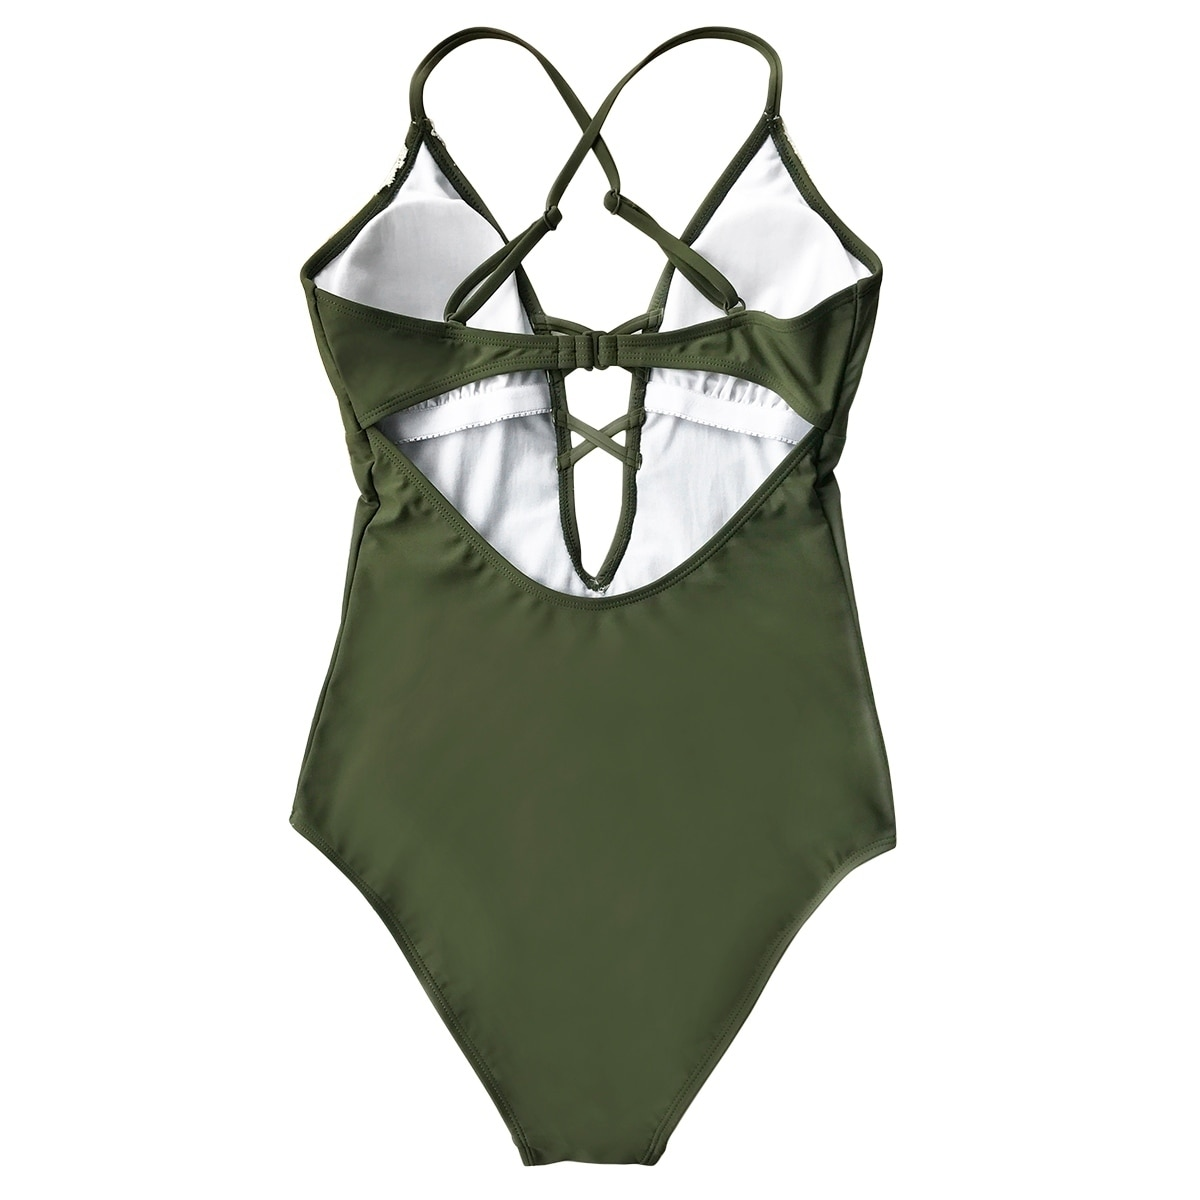 068146baca Shop Cupshe Women's Solid Color Vintage Lace Hem Deep V neck One Piece  Swimsuit Padded Swimwear Bathing Suit - Free Shipping On Orders Over $45 -  Overstock ...